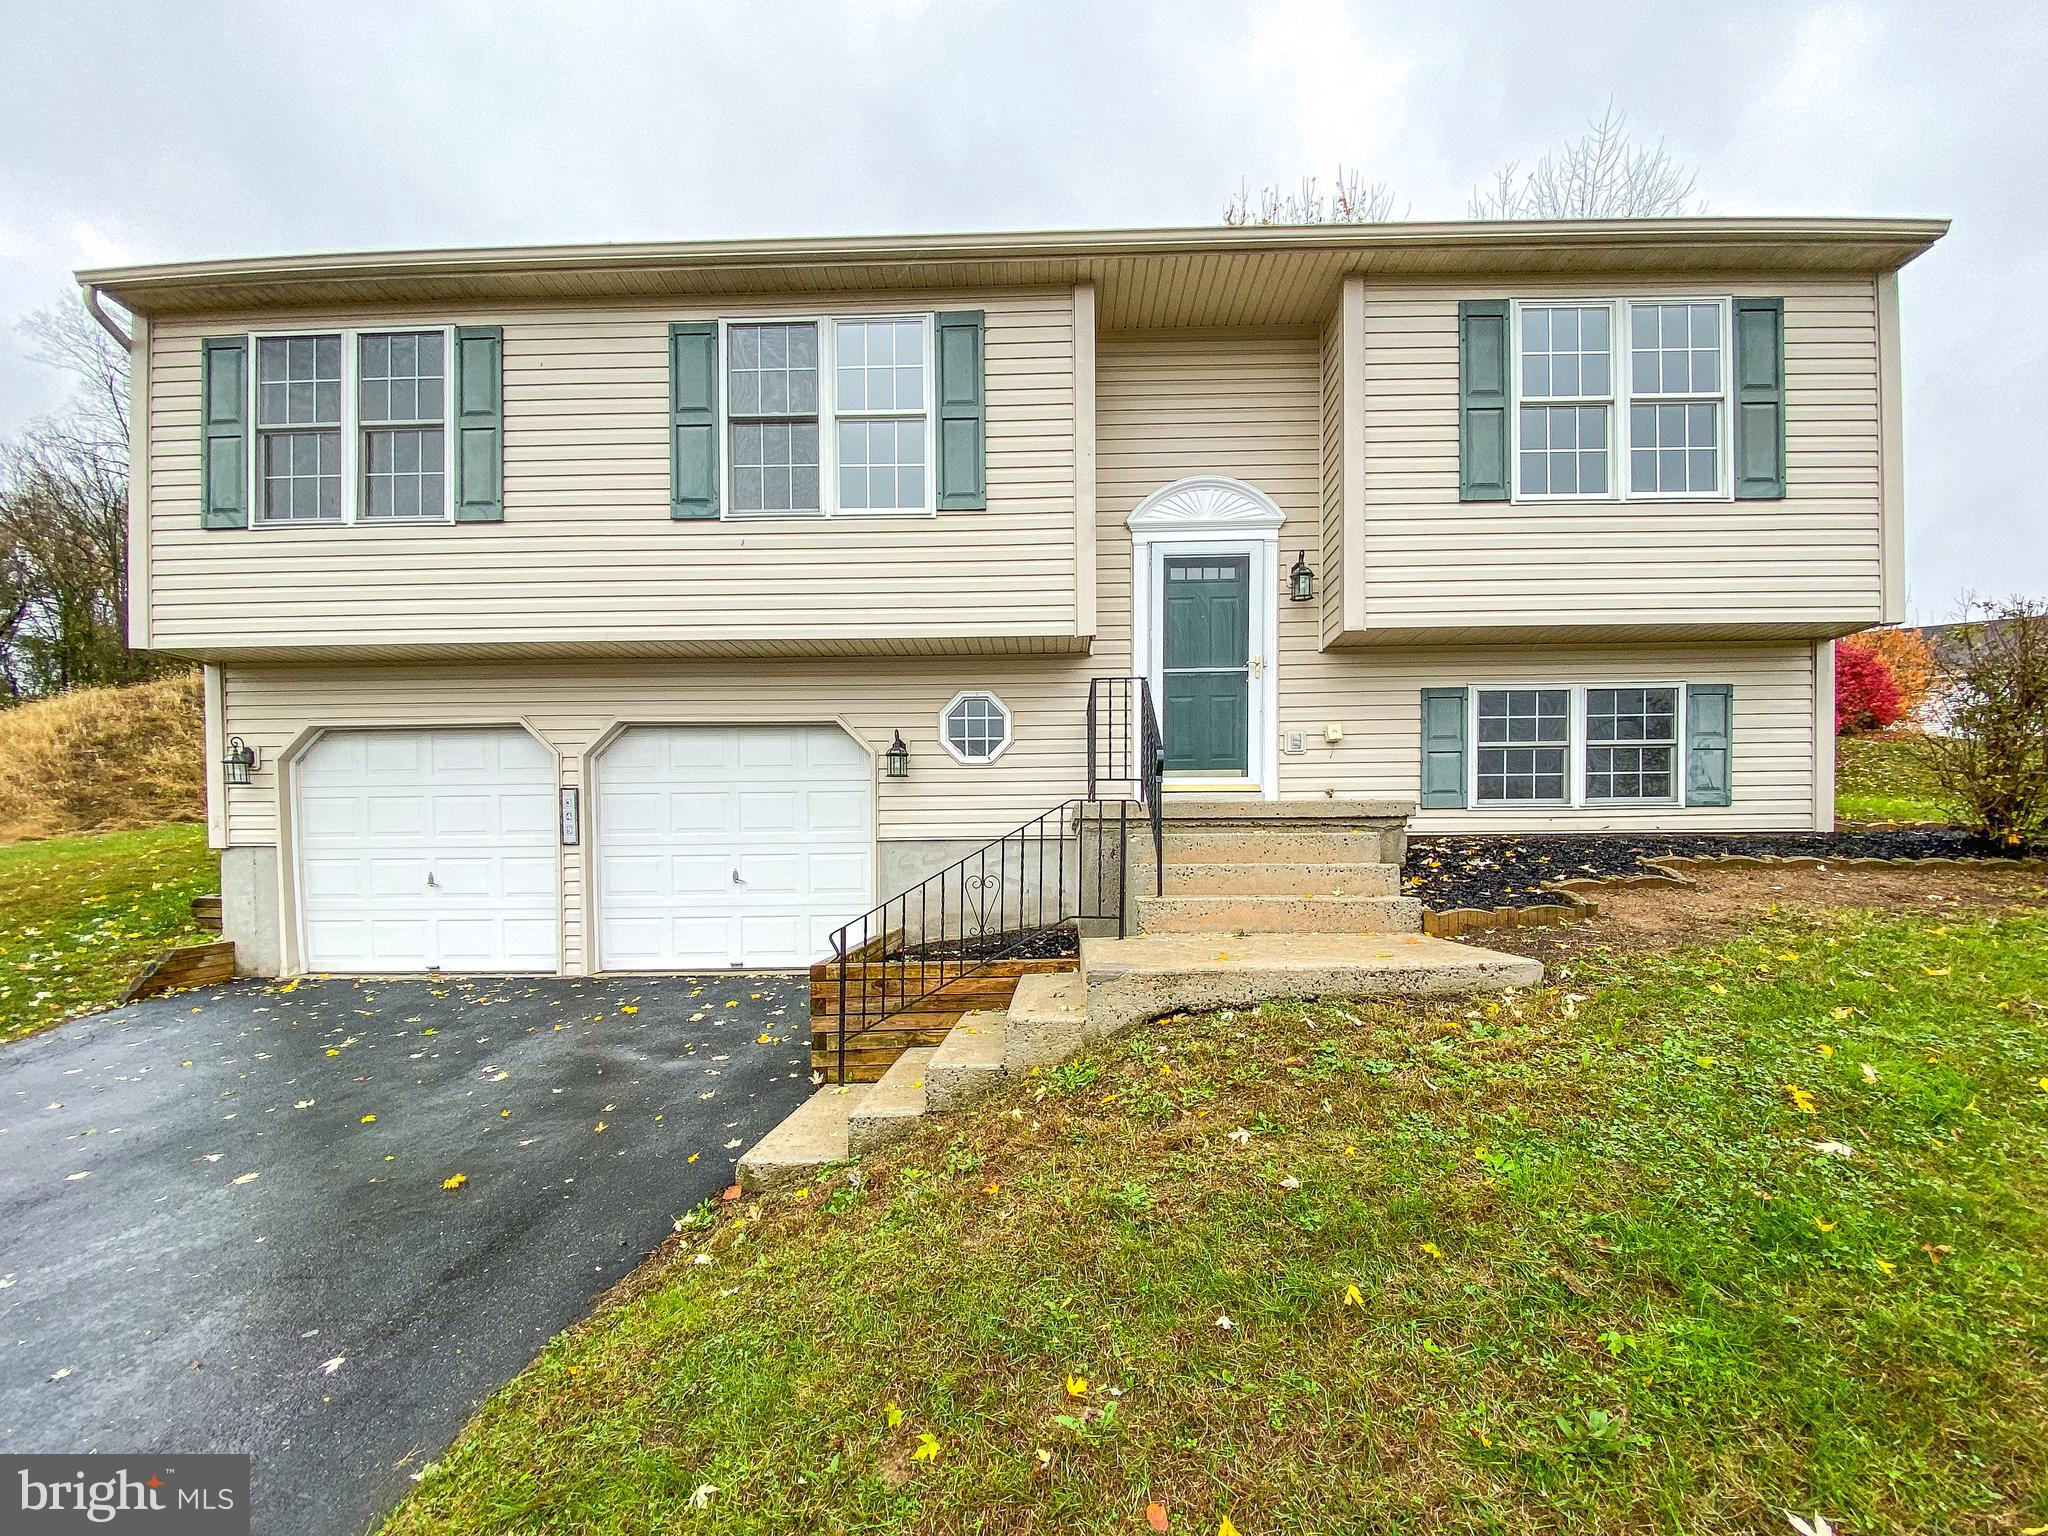 349 DOGWOOD LANE, WOMELSDORF, PA 19567